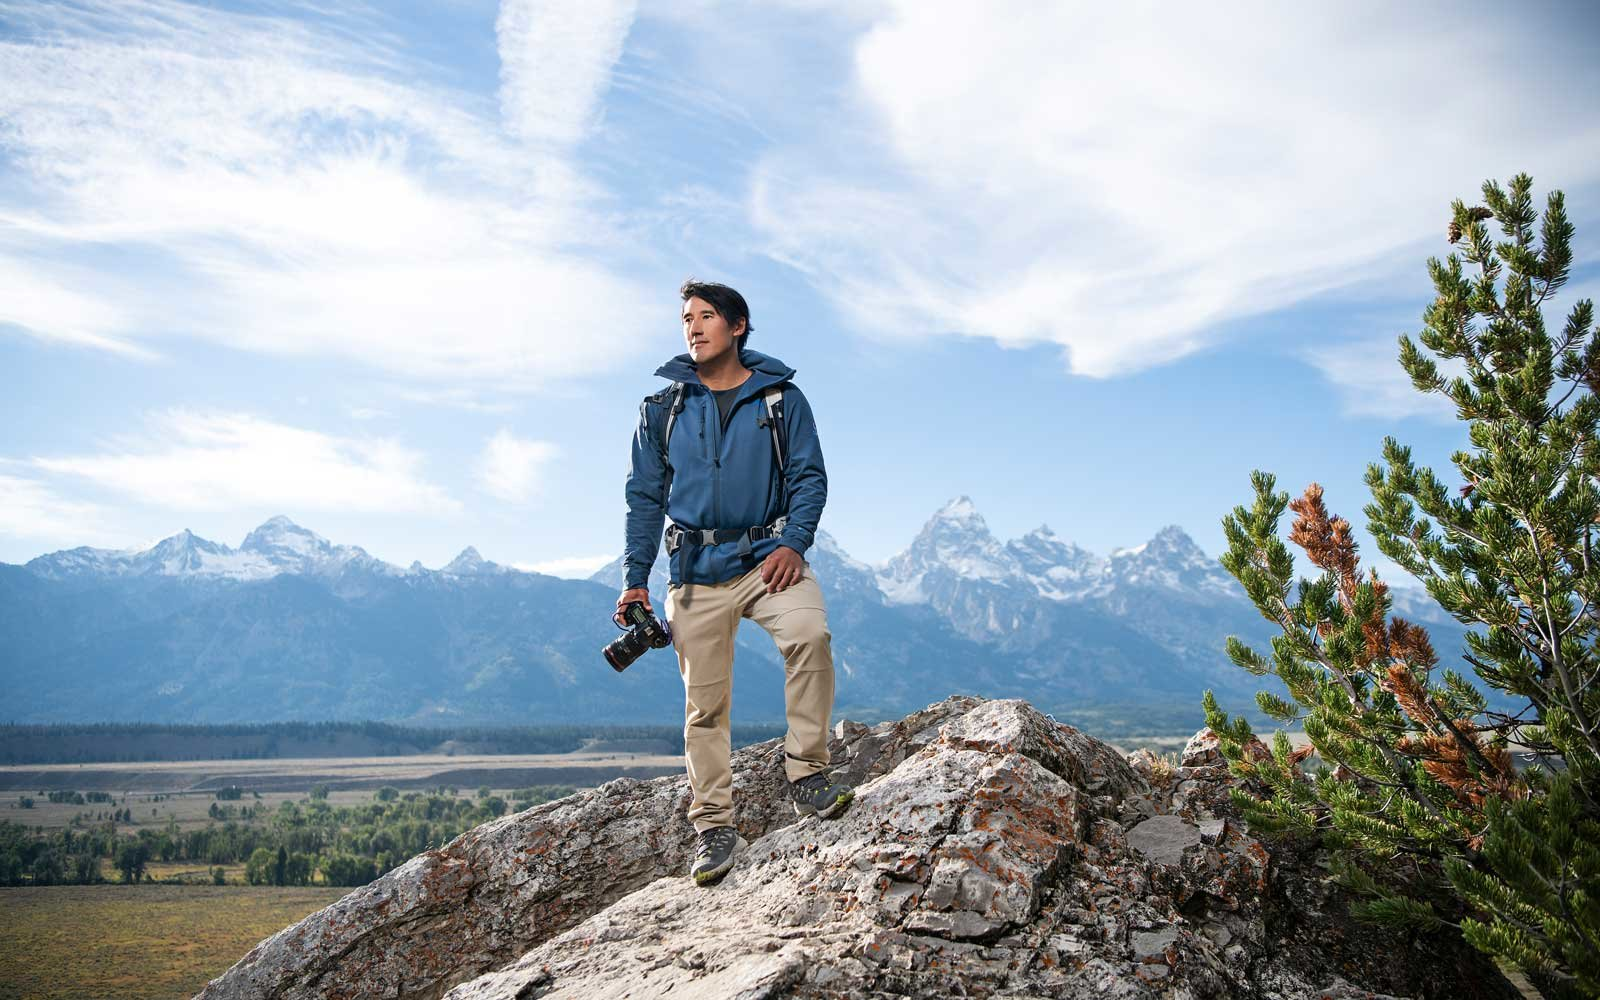 Renowned Photographer Jimmy Chin Shares His Tips For Adventure Photography